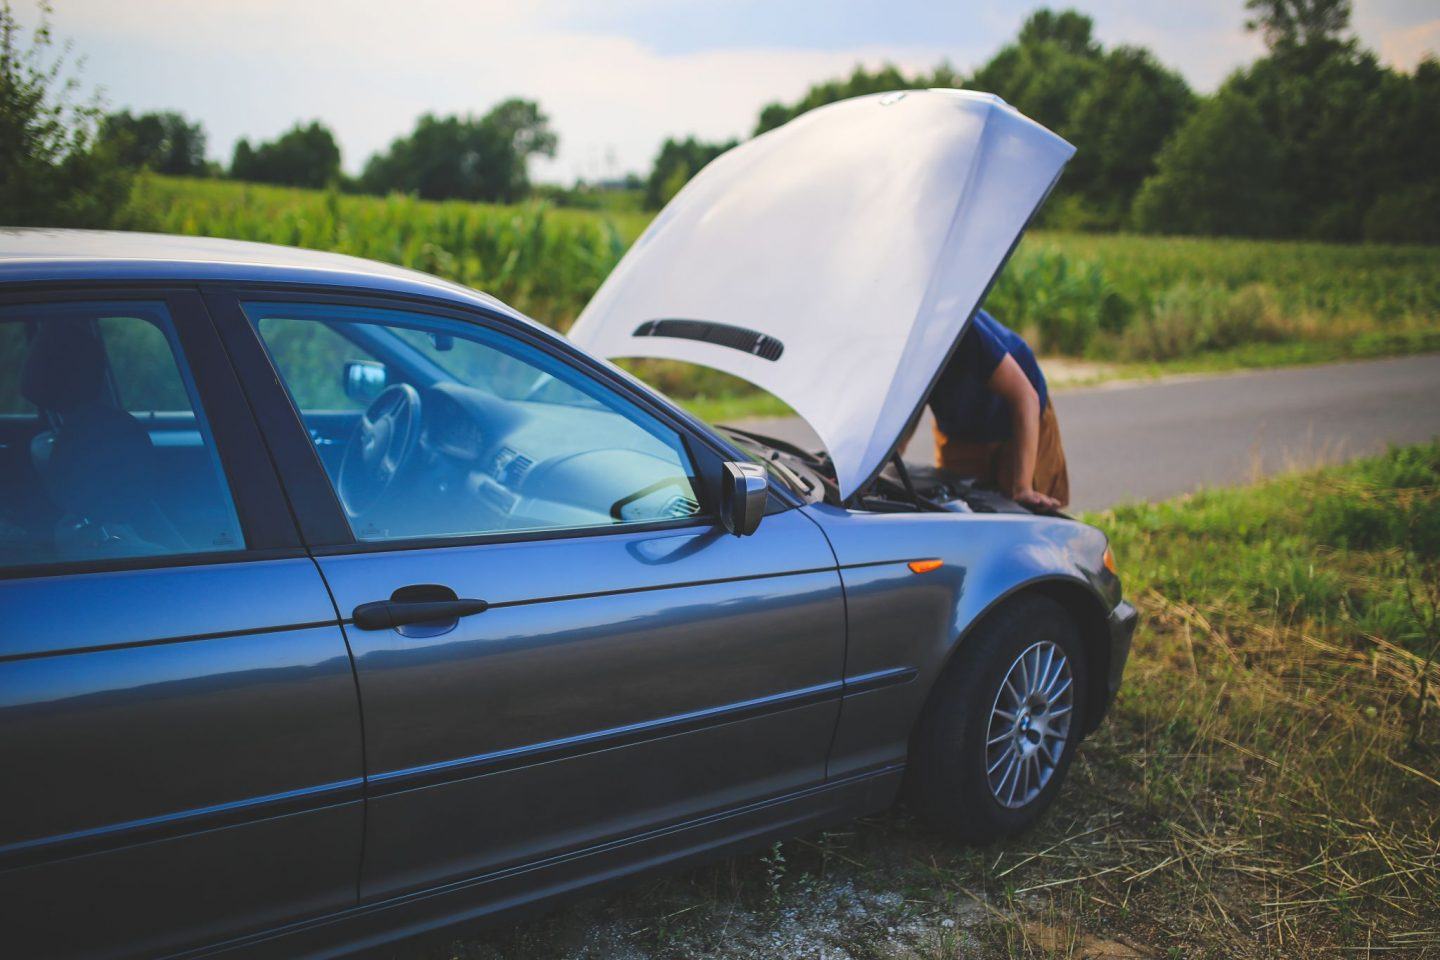 4 REASONS WHY YOU ALWAYS HAVE TO BE PREPARED FOR CAR TROUBLE